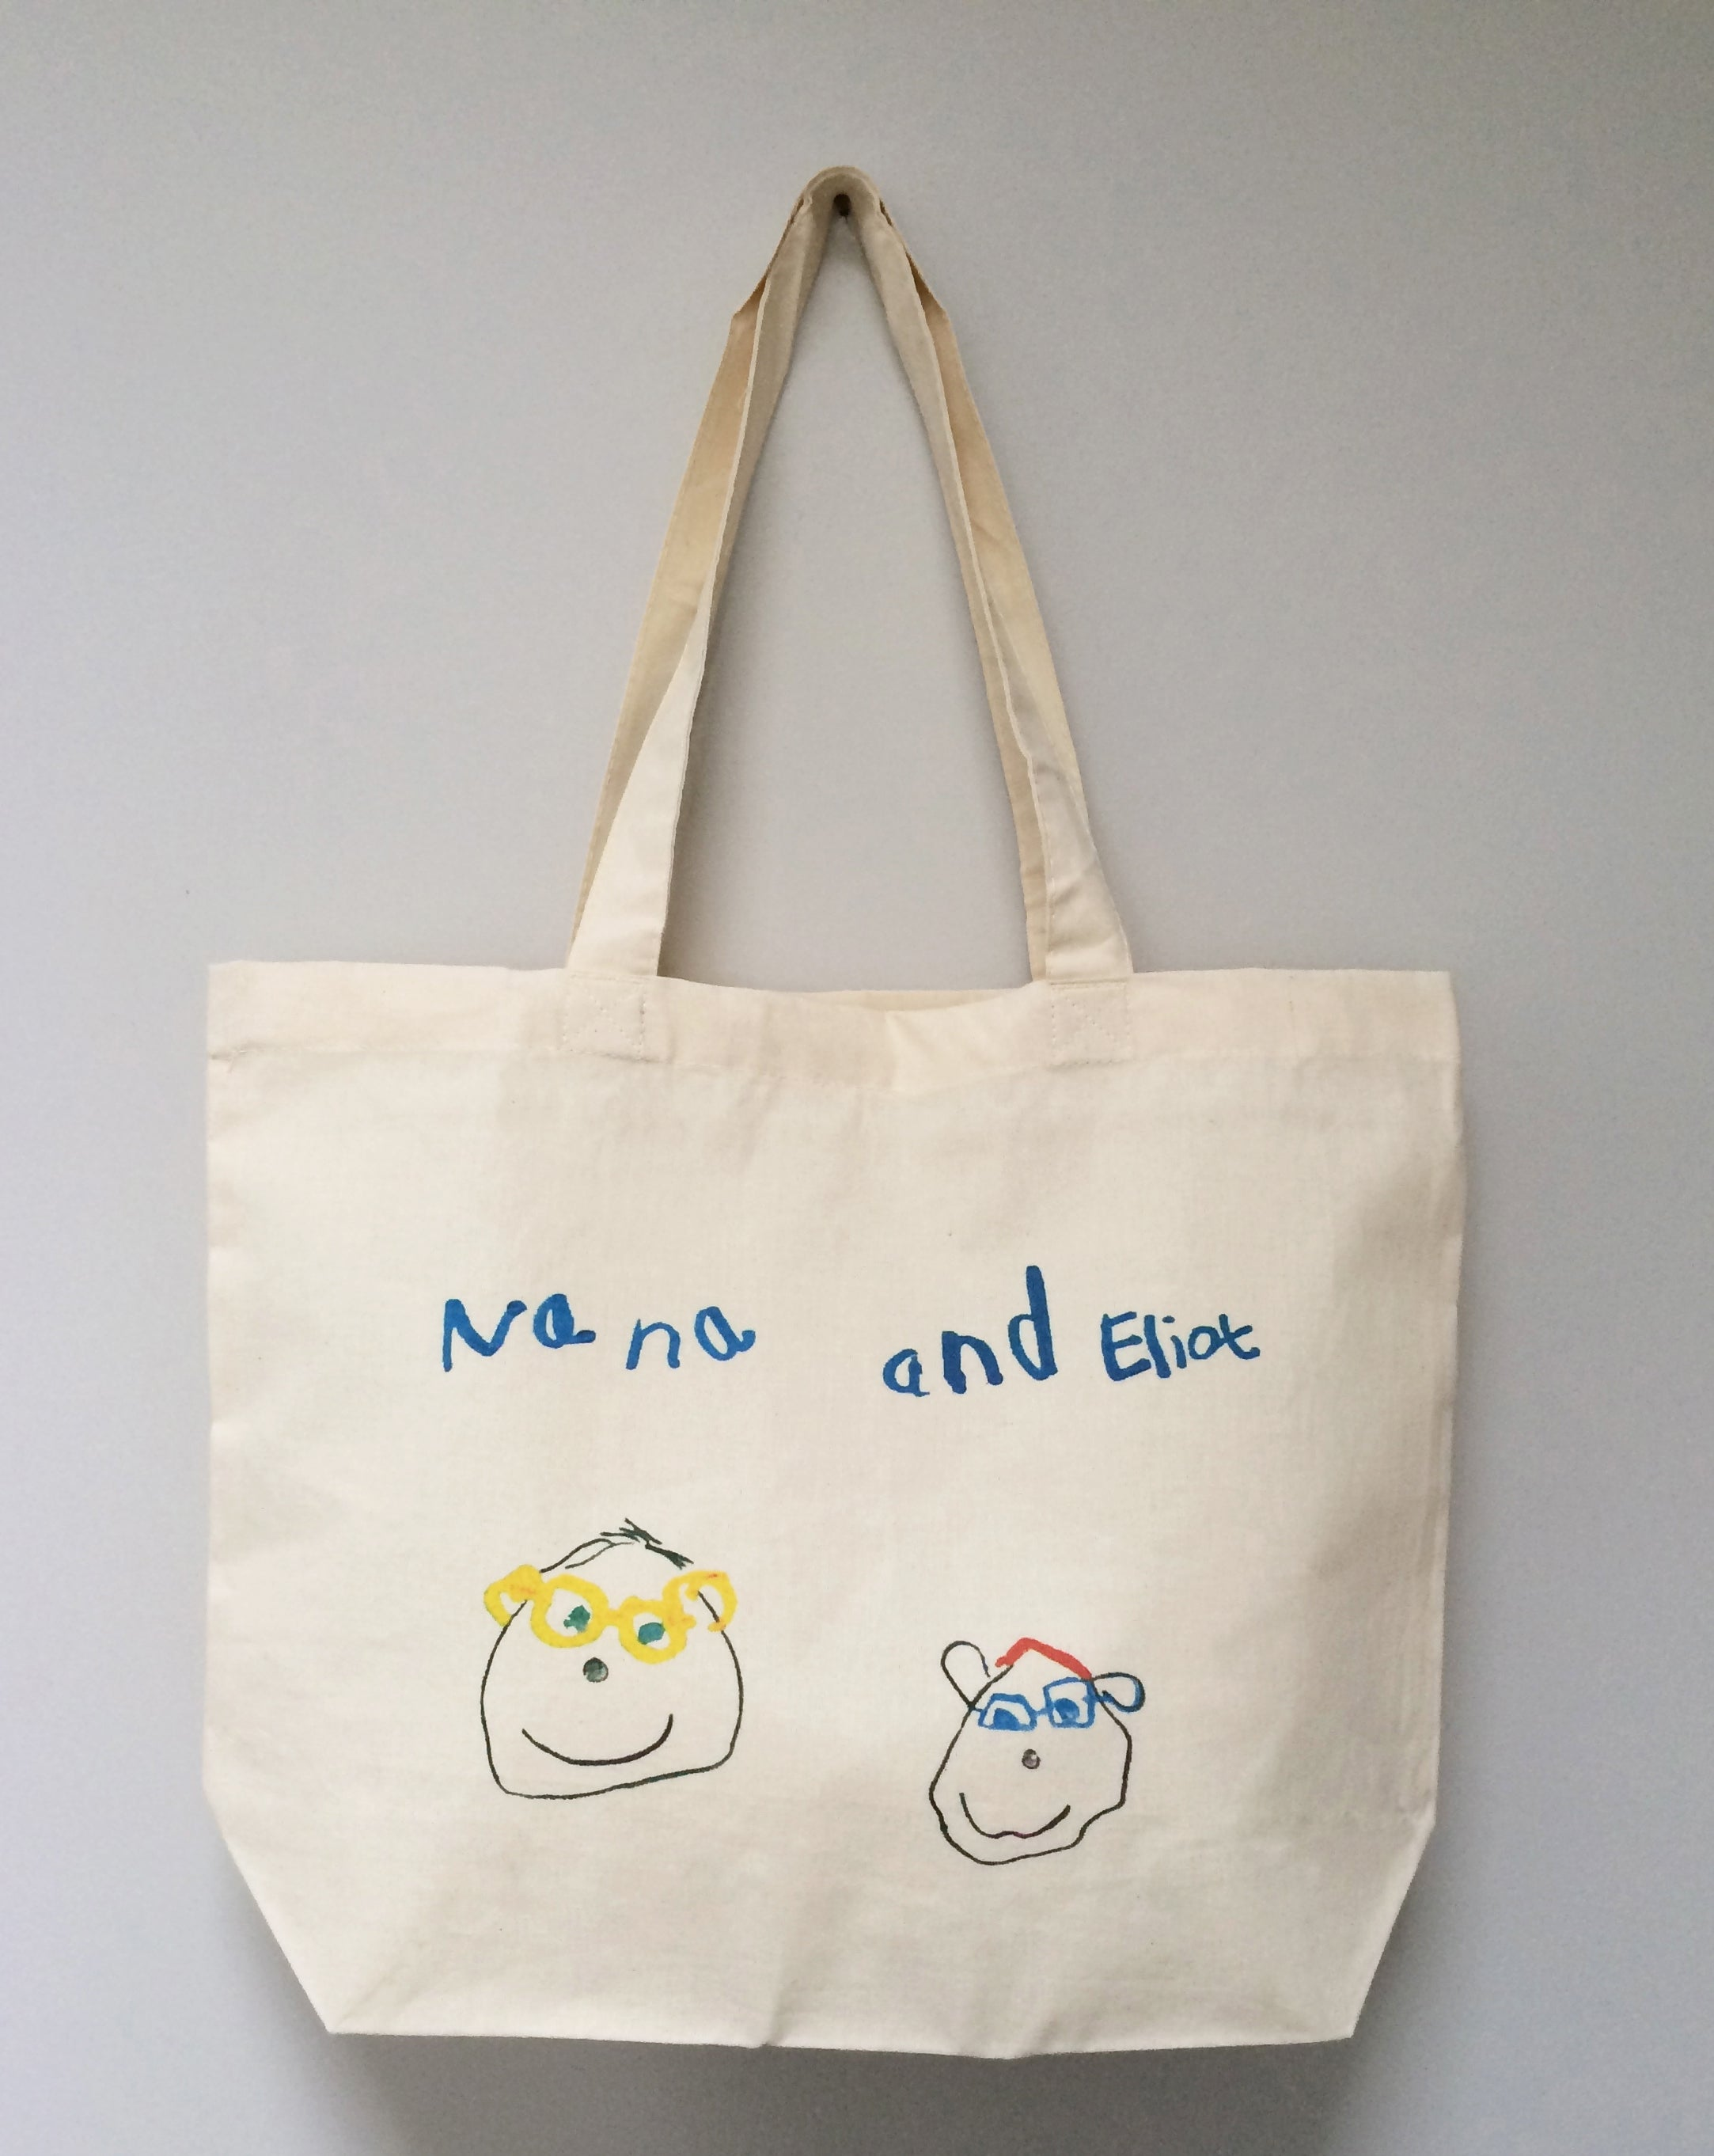 Grannies need Mother's Day gifts too.